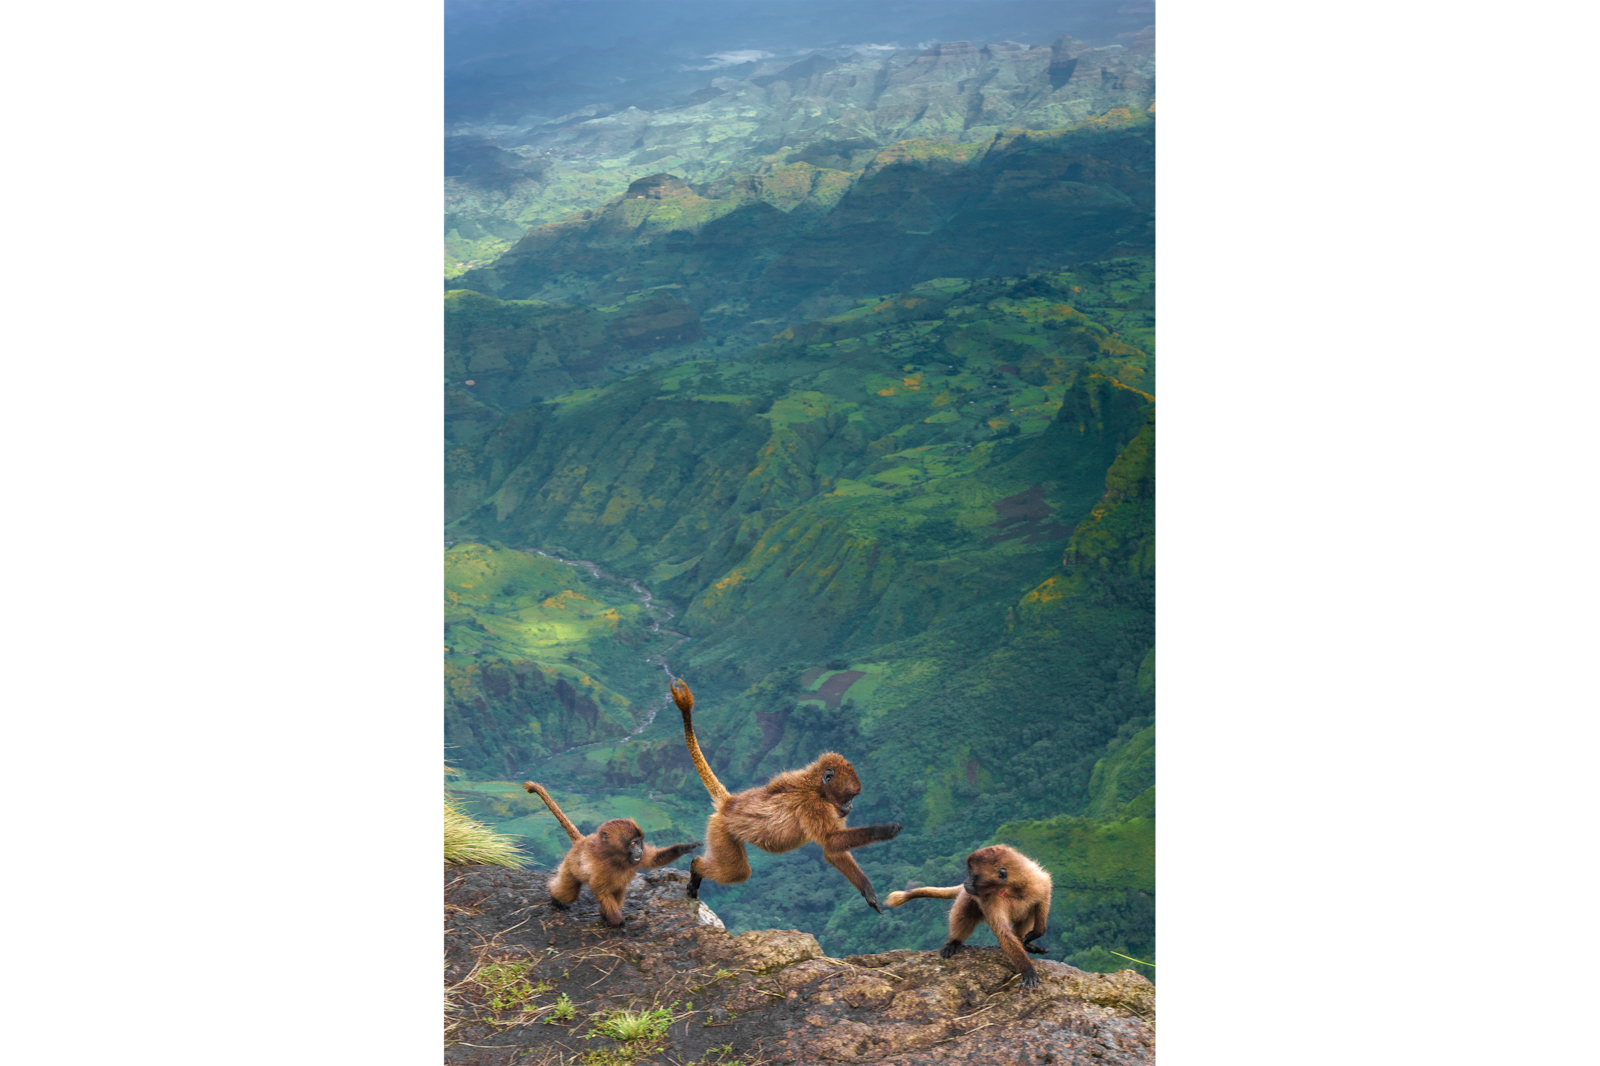 monkeys playing on edge of cliff alpha 7RIII